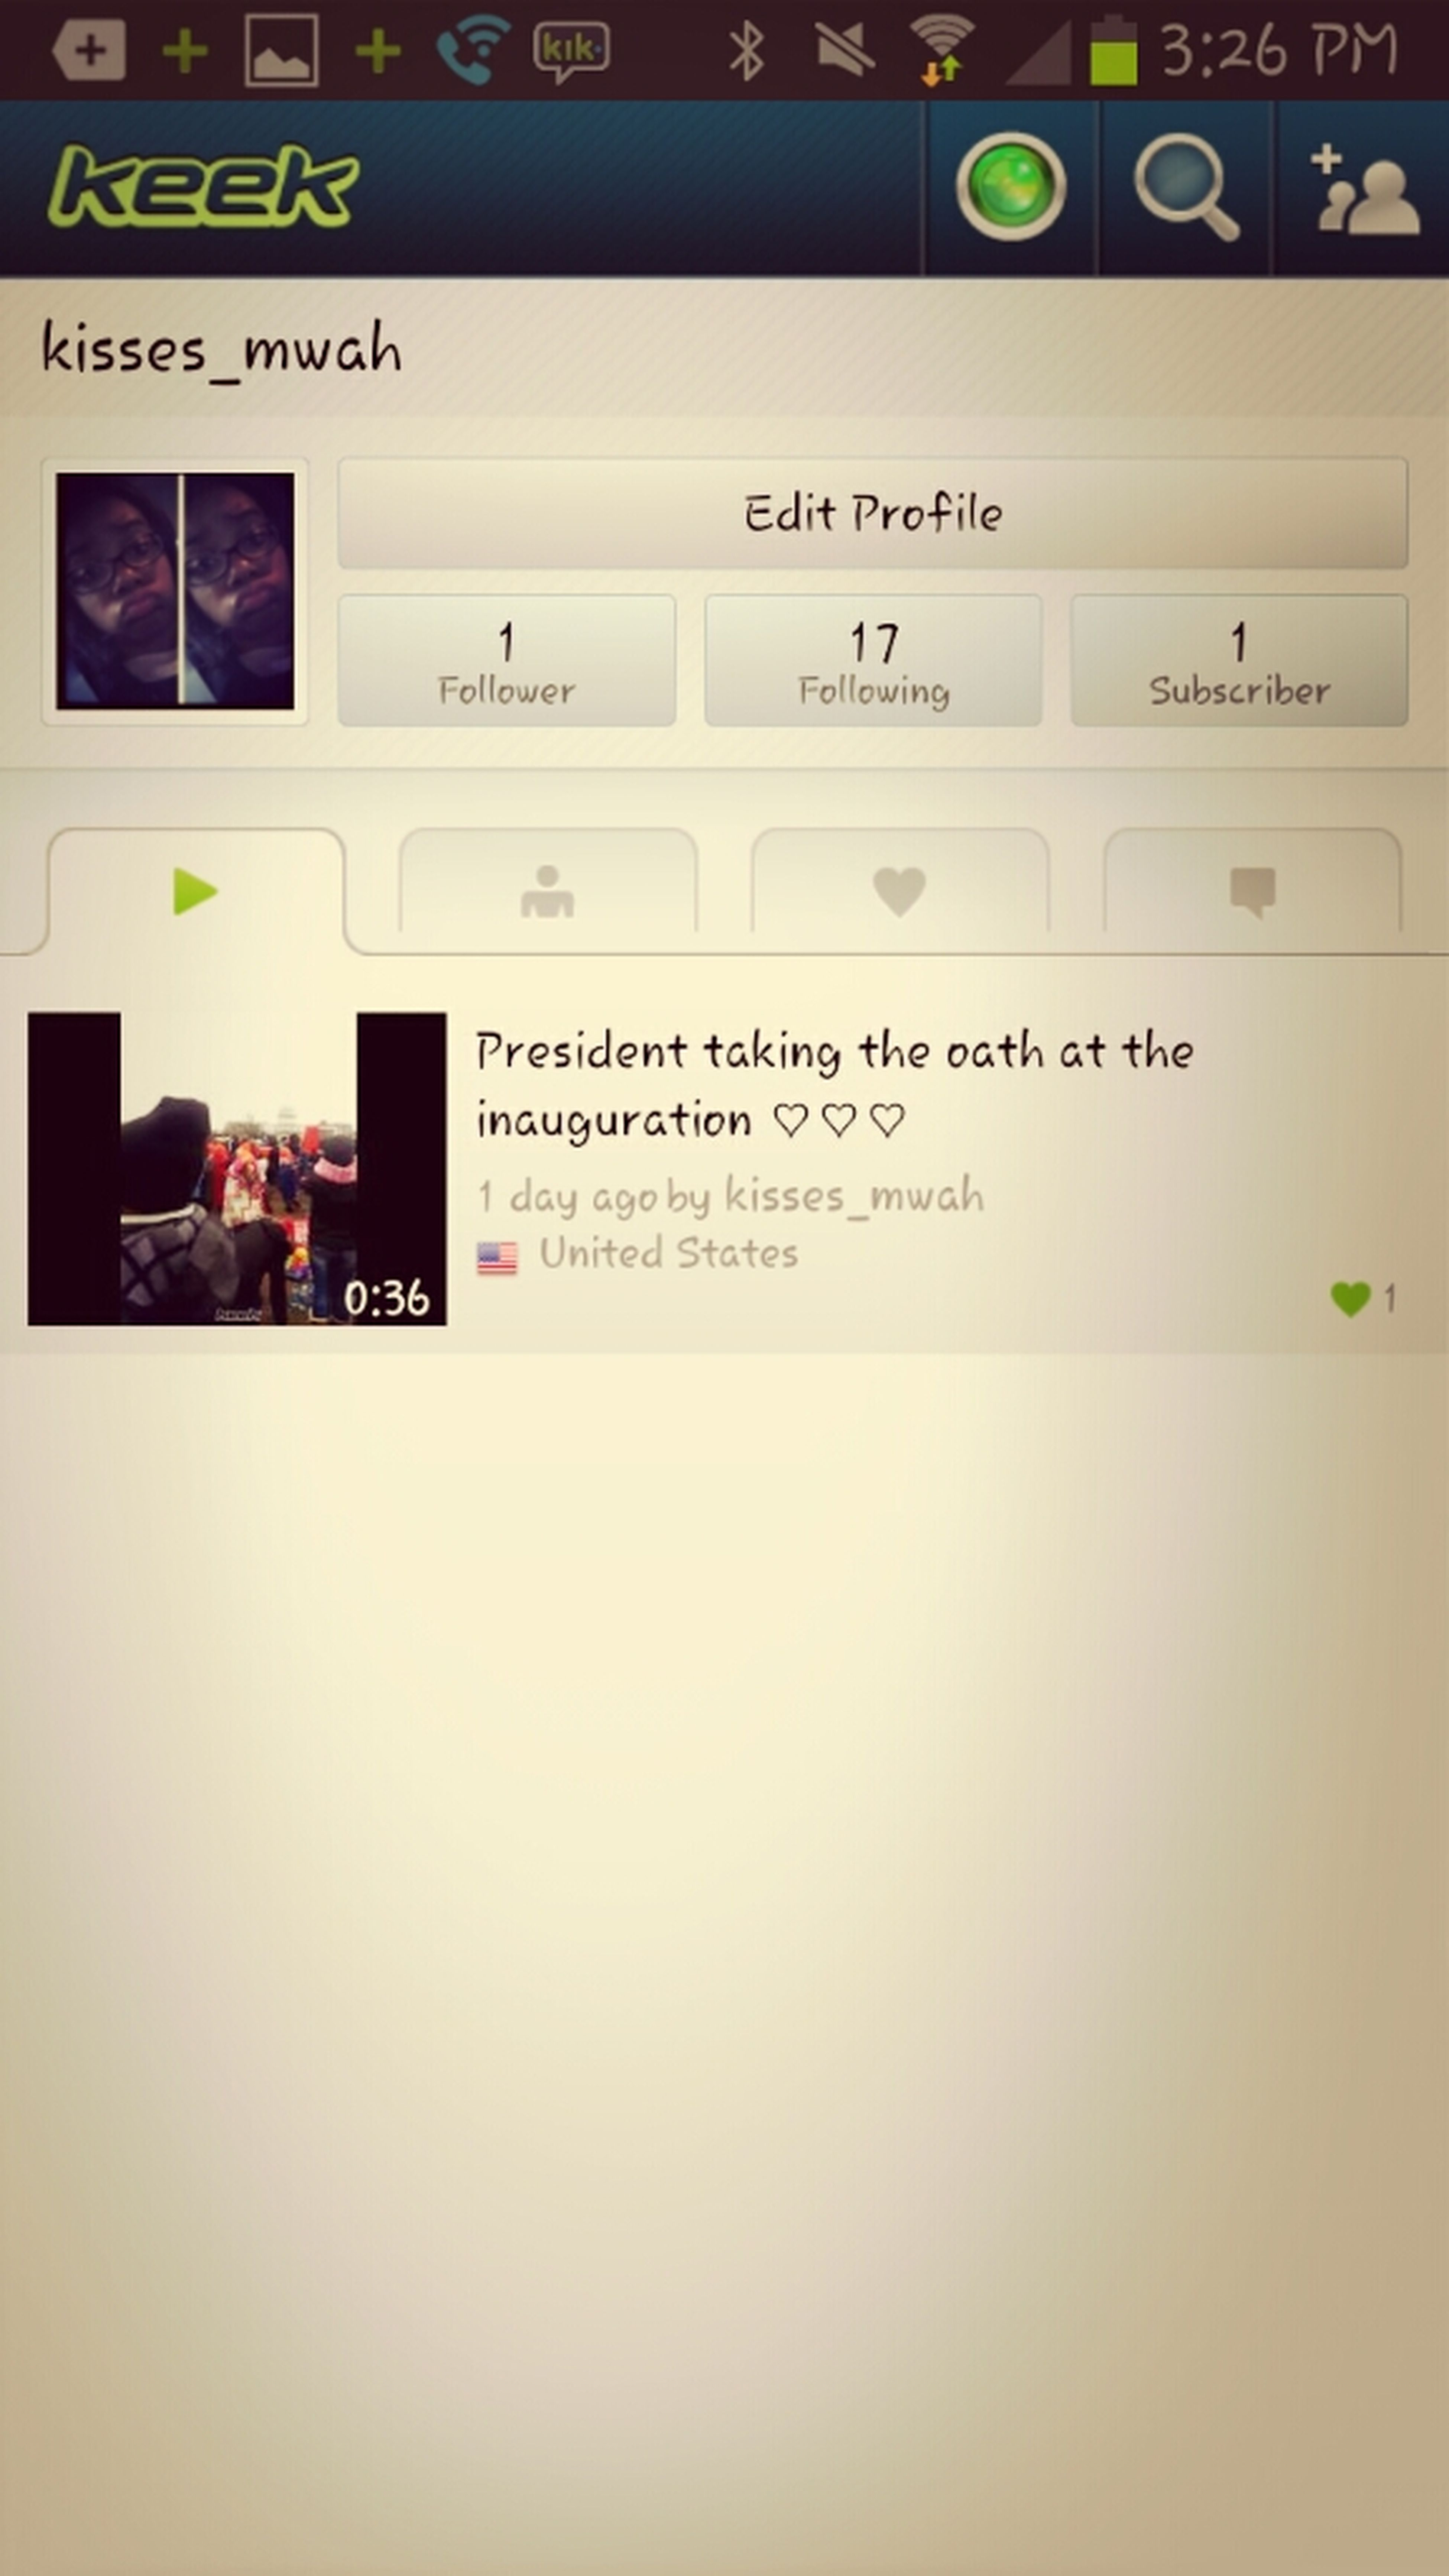 Follow Me On Keek @ Kisses_mwah